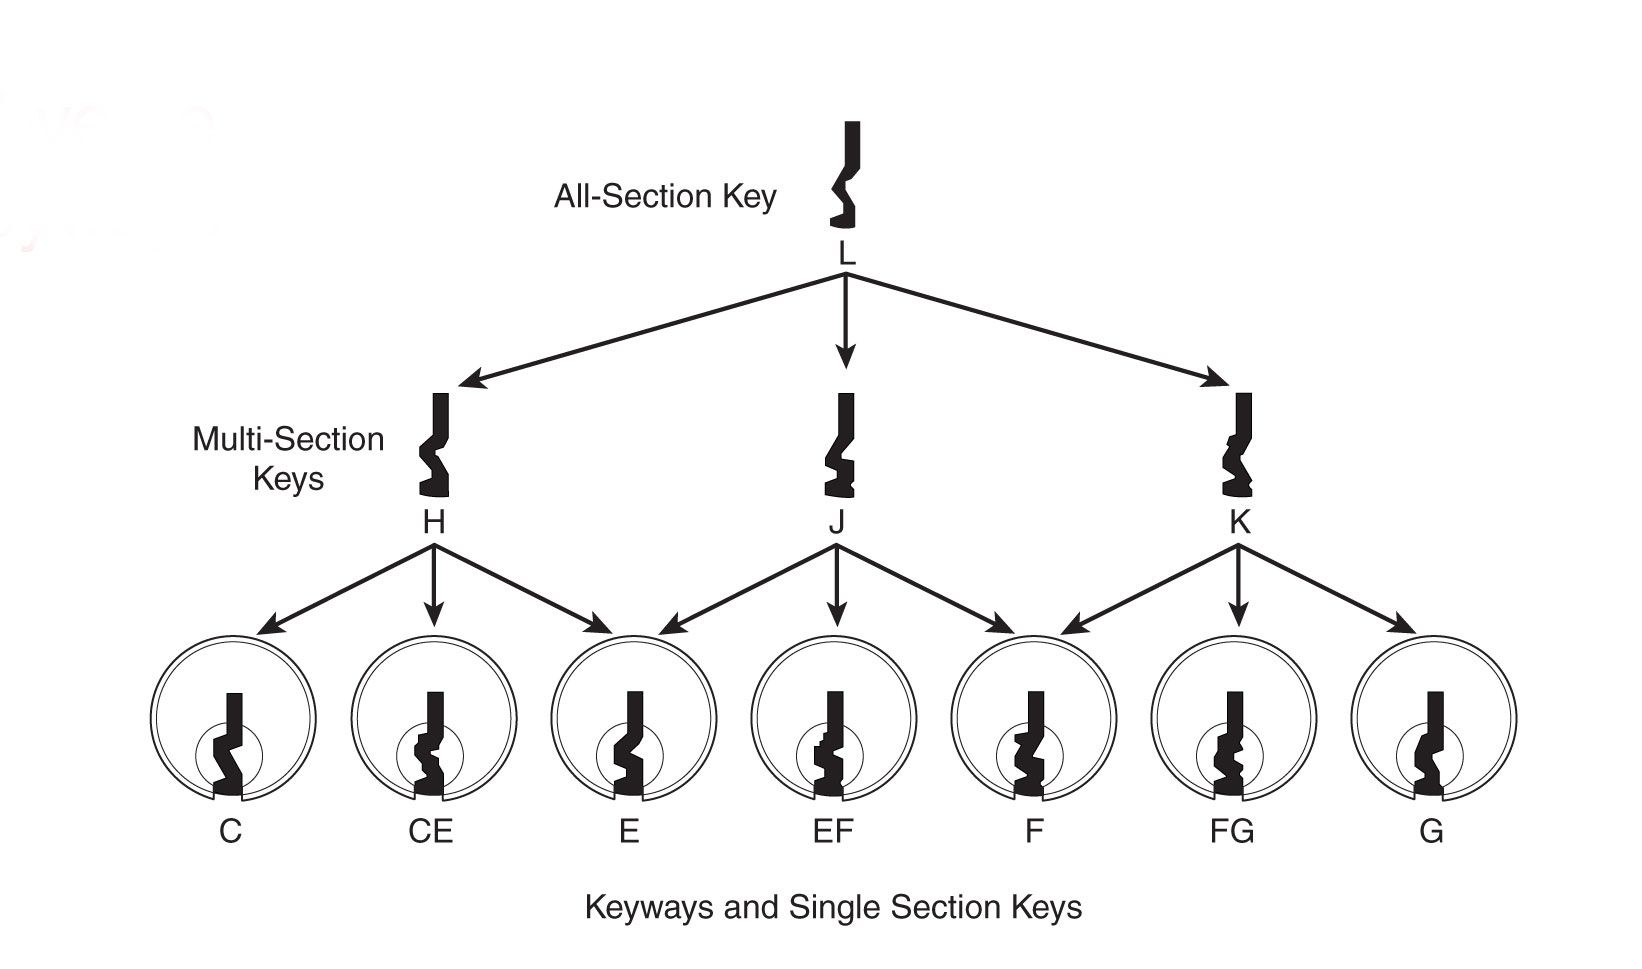 Schlage Classic Keyways And Single Section Keys Diagram (Mr pertaining to Key Diagram